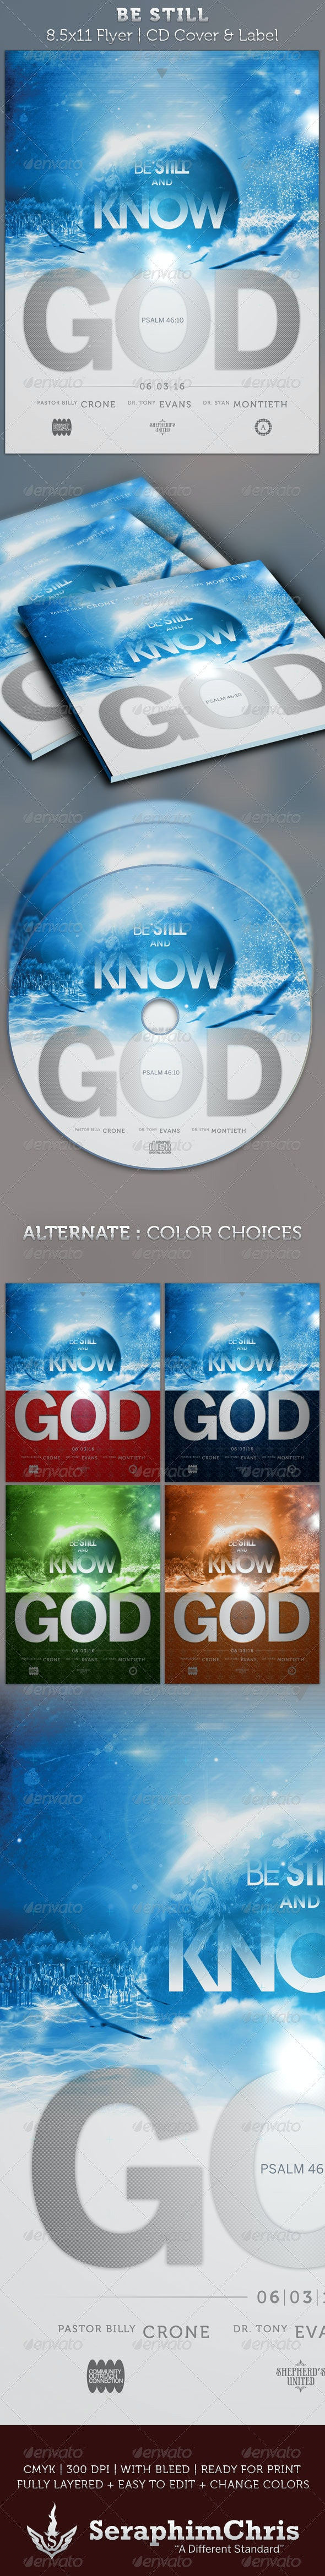 Be Still Full Page Flyer and CD Cover Template - Church Flyers